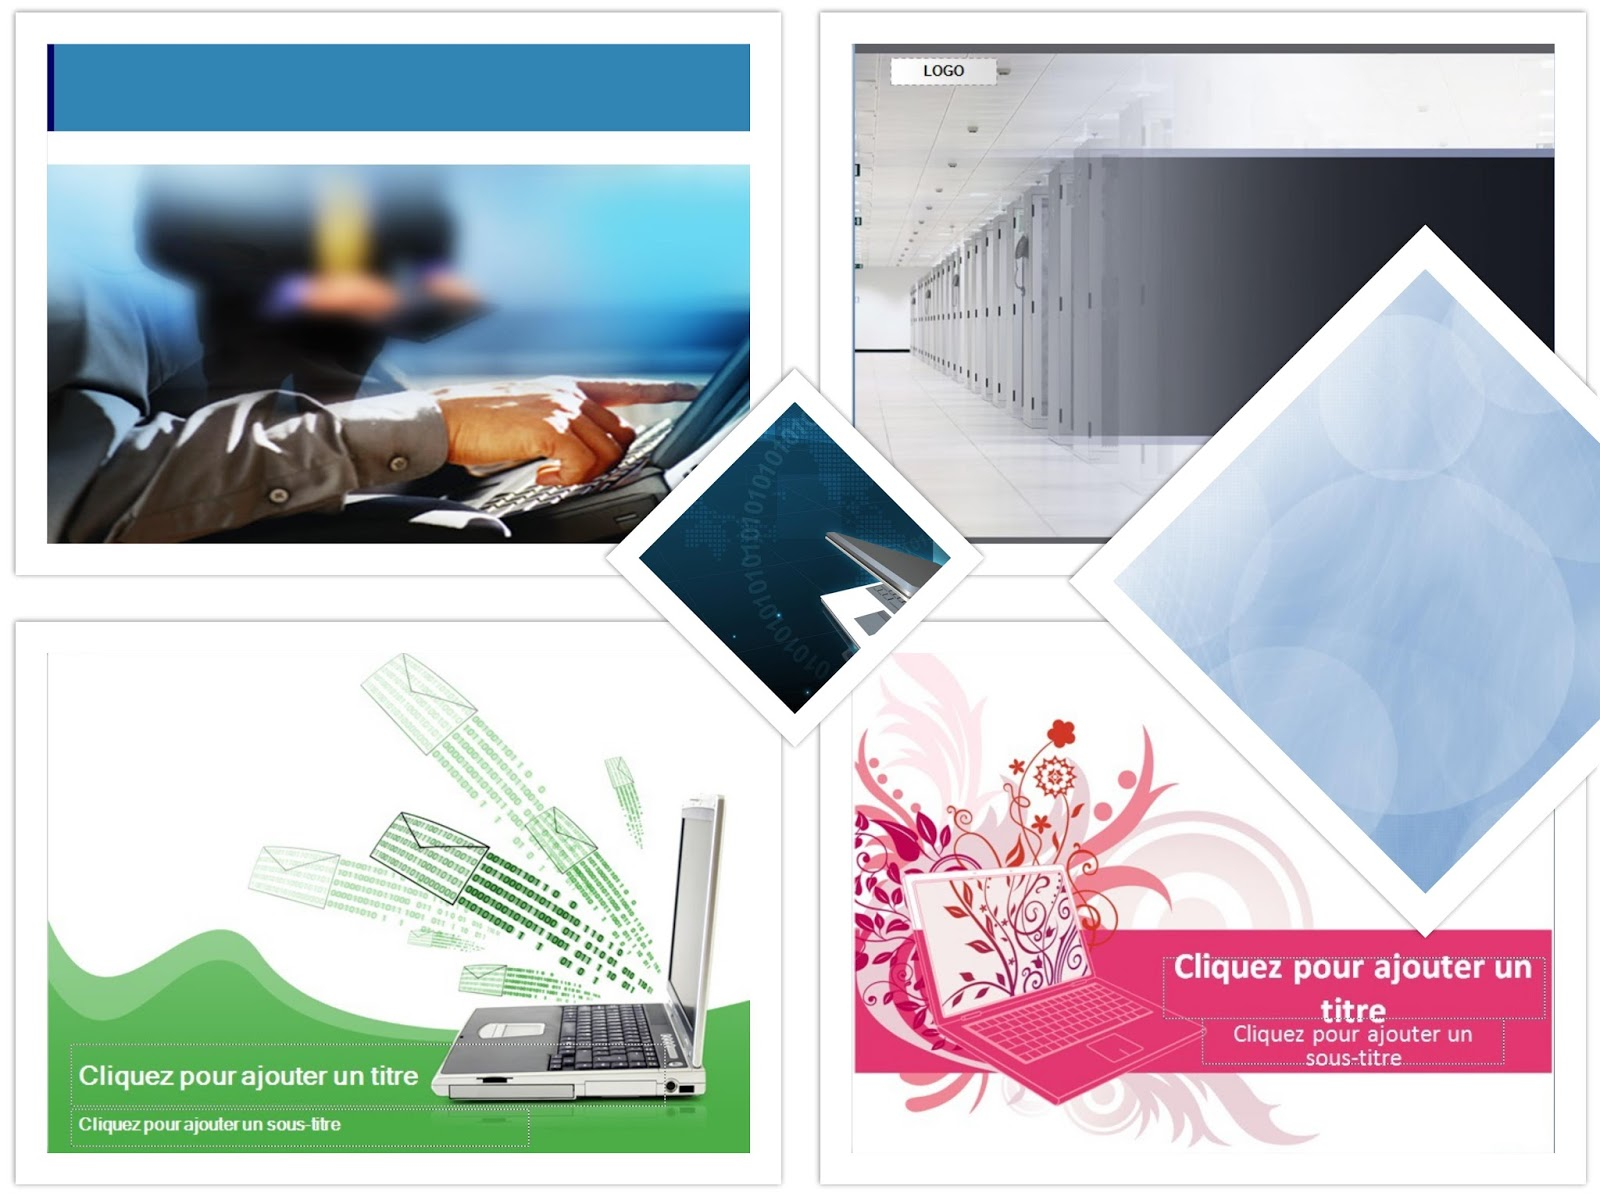 Ppt Themes 16 High Tech Ppt Templates Free Download For